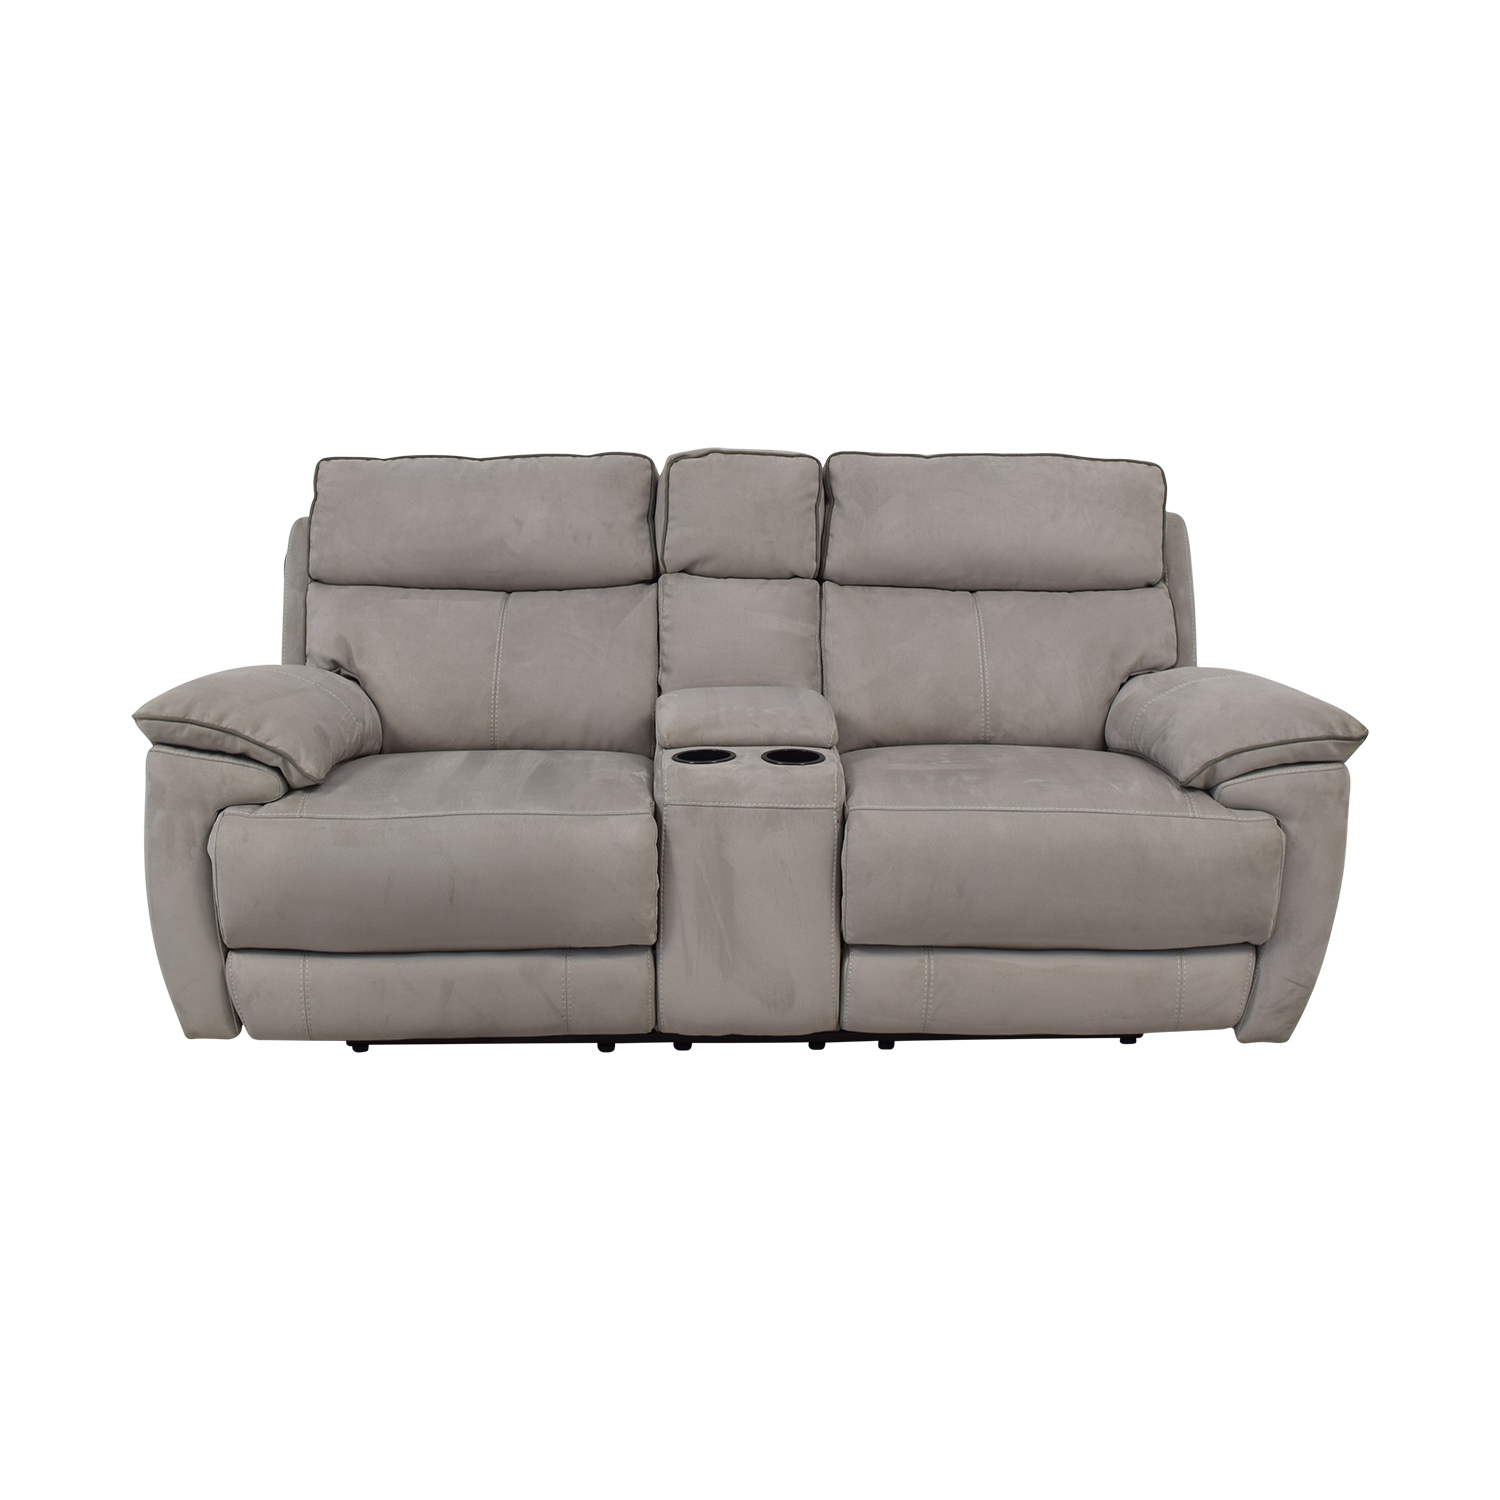 Power Reclining Console Loveseat for sale